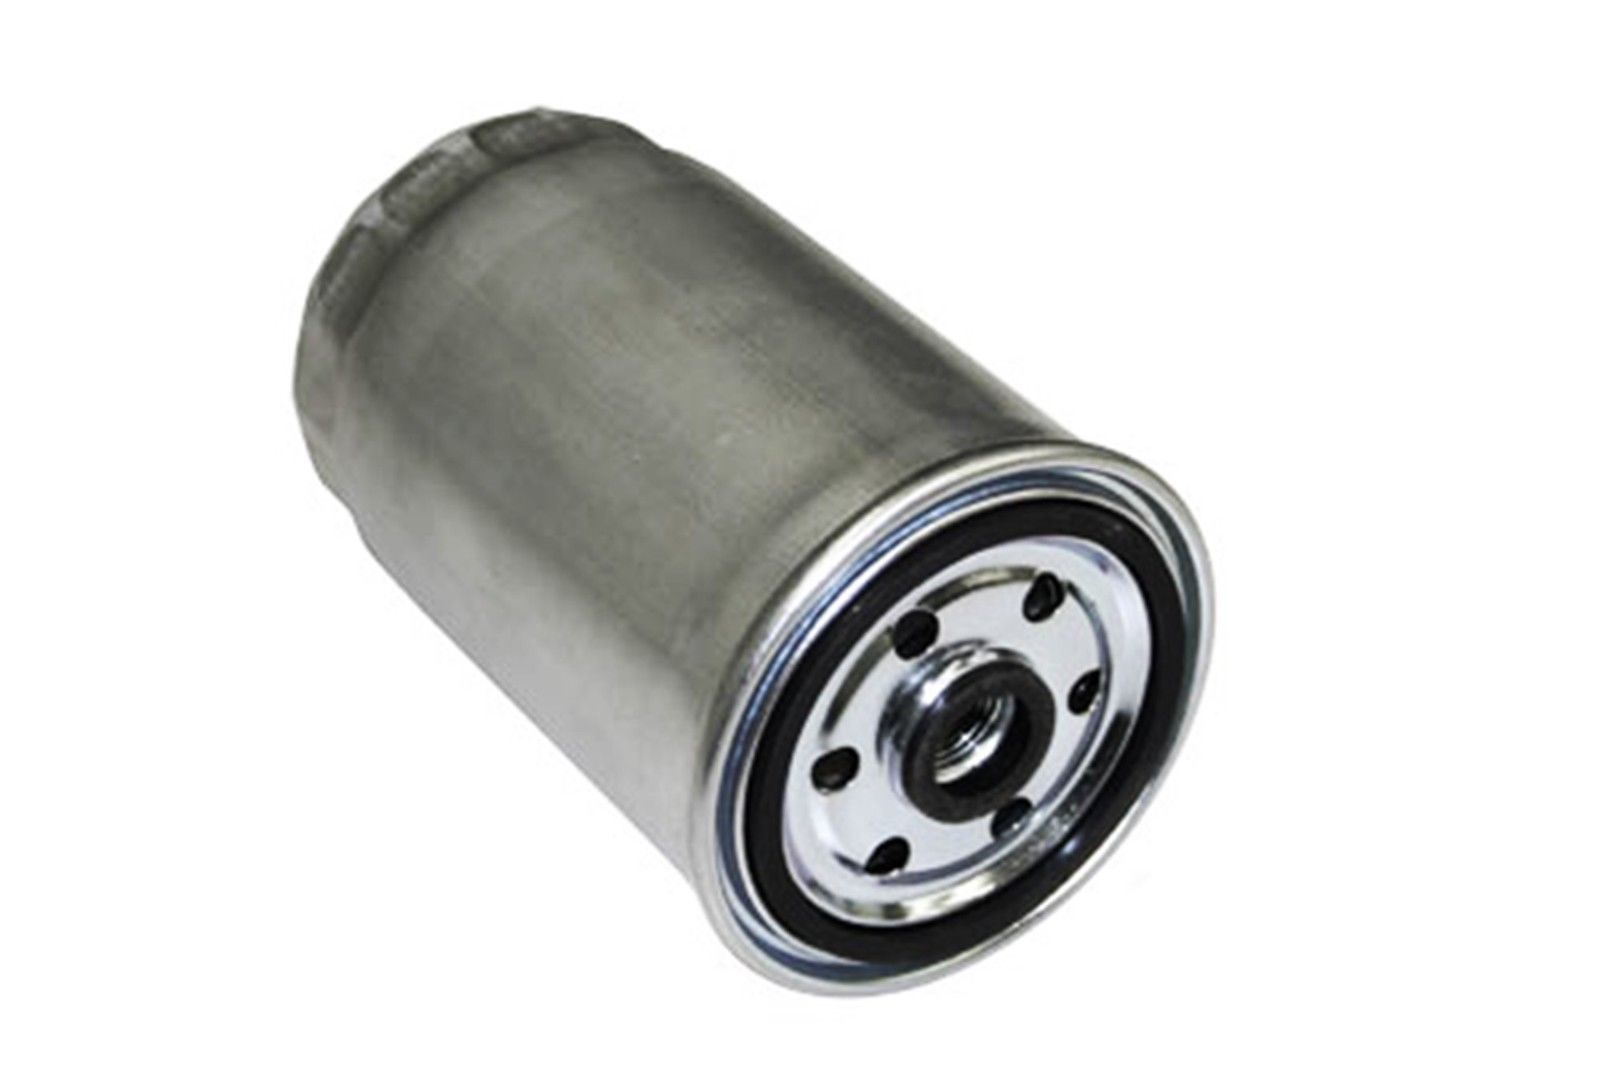 hight resolution of s l1600 s l1600 land rover discovery defender range classic diesel fuel filter aeu2147l new